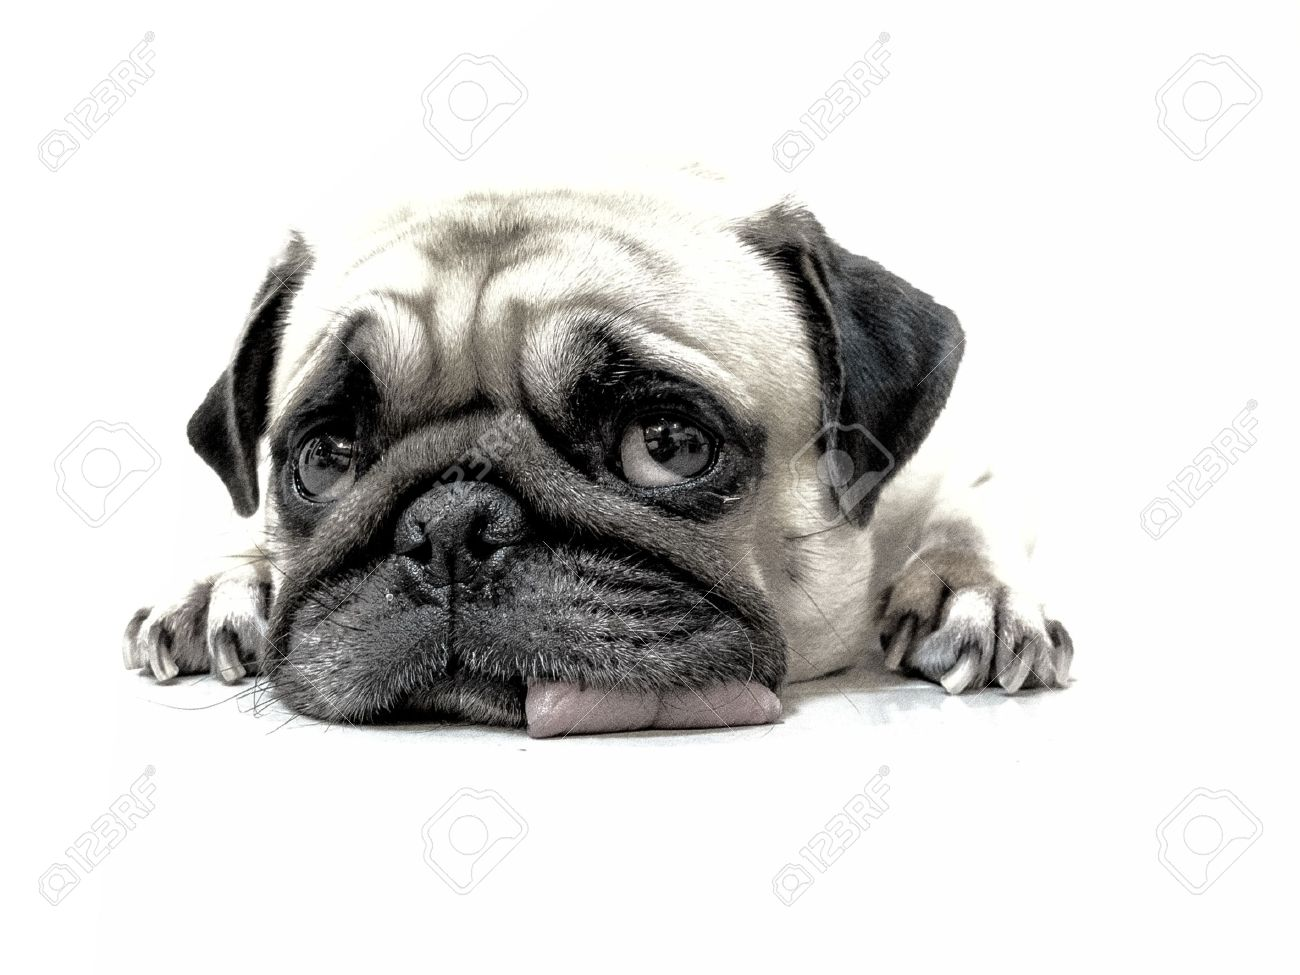 Pencil sketch of close up face cute pug puppy dog sleeping by chin and tongue